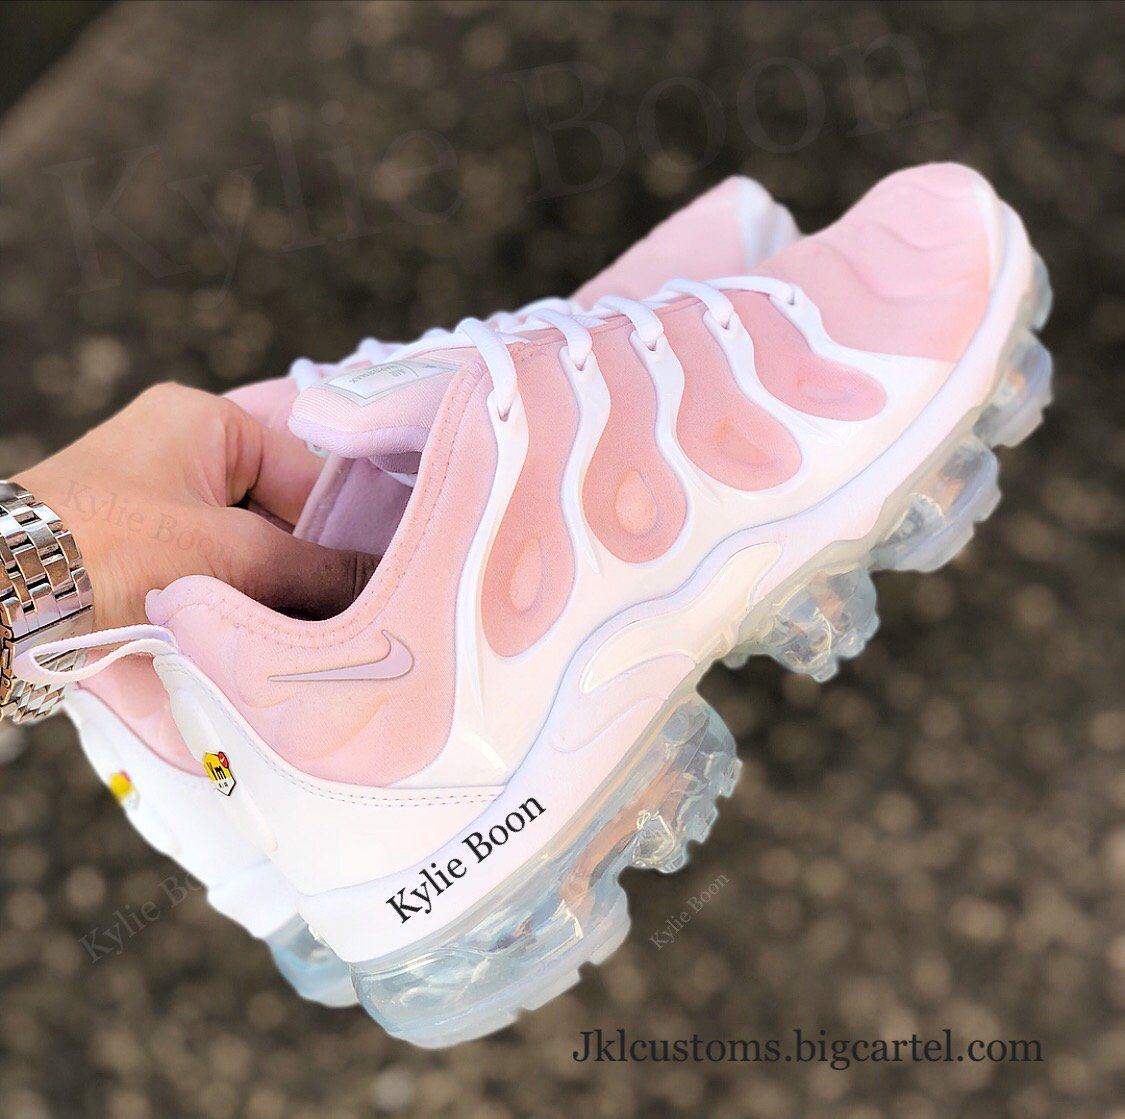 "6294111fbd4f6 ""Pinky"" Nike vapormax plus customs. Please allow up to 3 weeks to receive  your order. This can be changed at any time without prior notice due to  high ..."